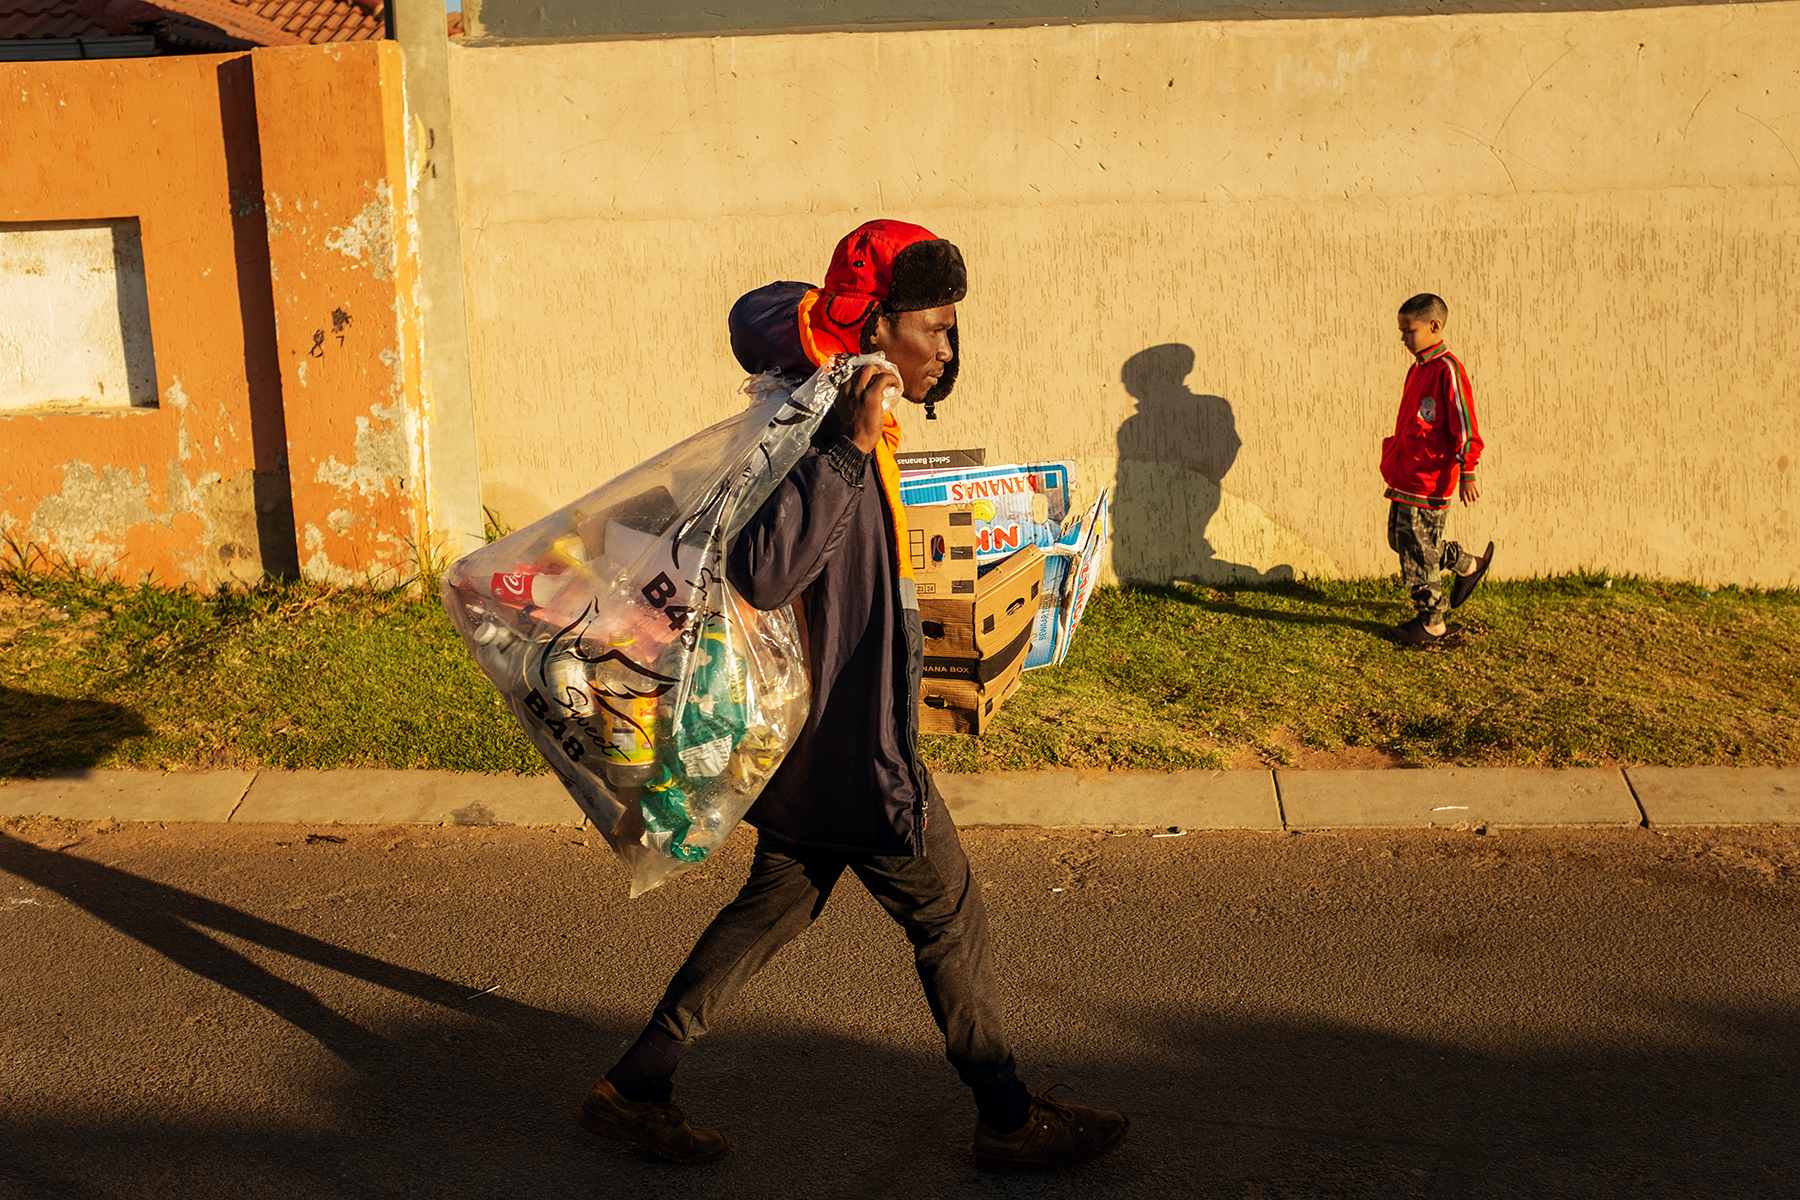 Scelo Sithole, 38, walks carrying bags of collected waste in Johannebsurg, South Africa, in the early morning of June 12, 2019.